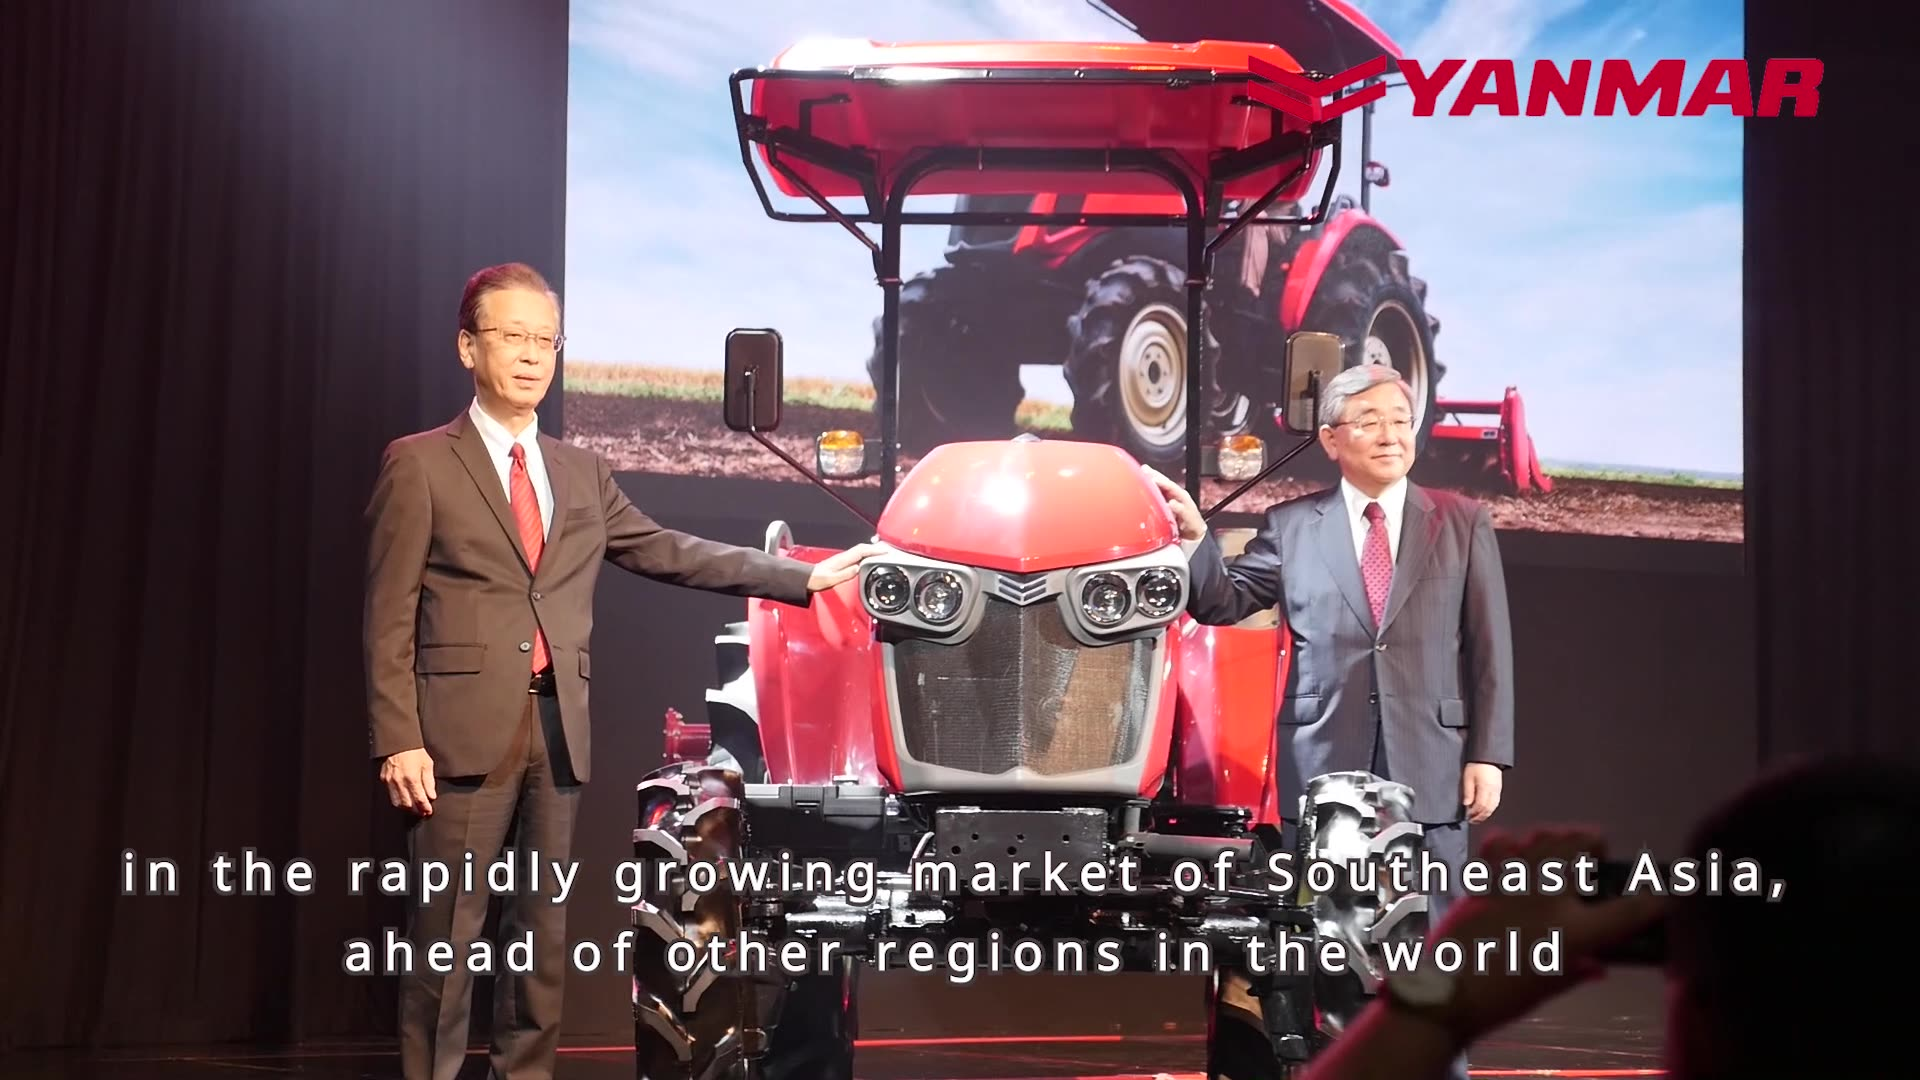 Unveiling of Yanmar YM Tractor